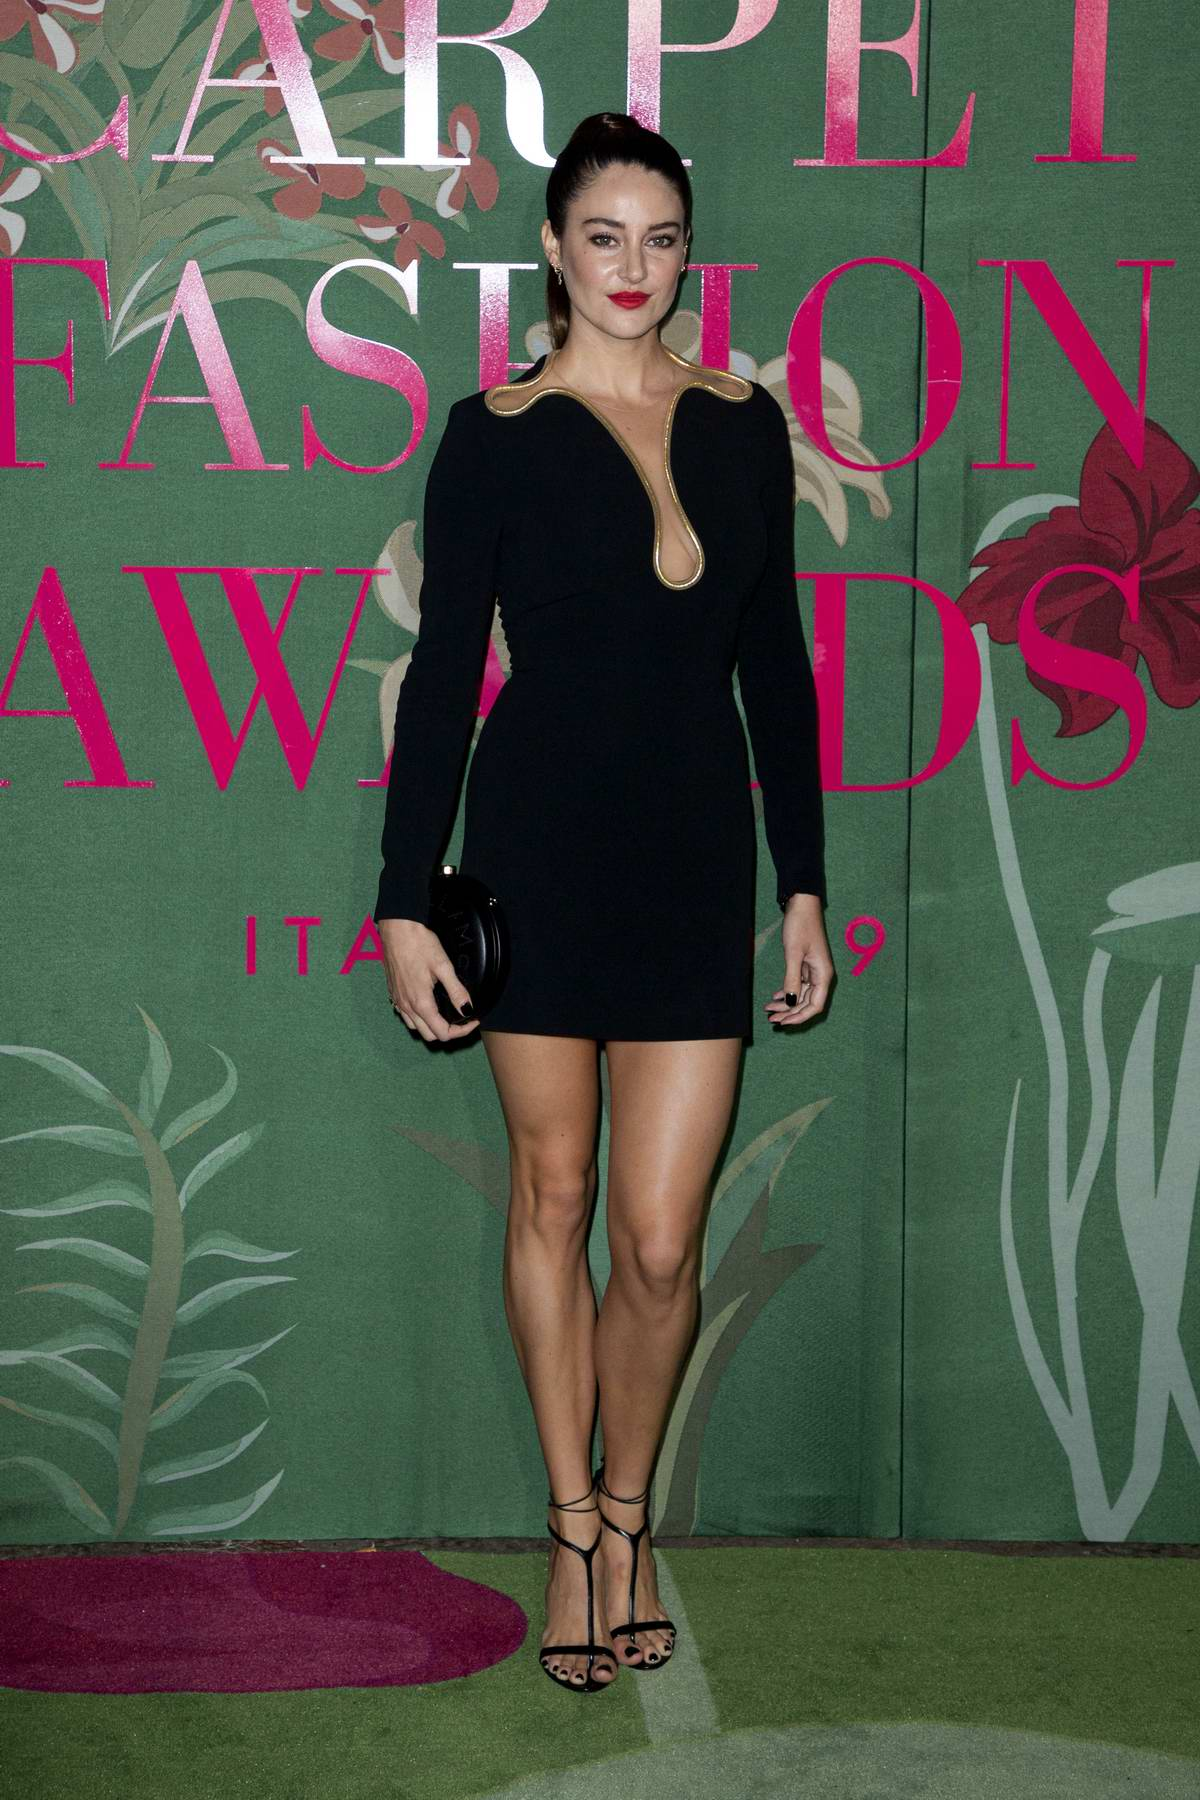 Shailene Woodley attends The Green Carpet Fashion Awards 2019 in Milan, Italy